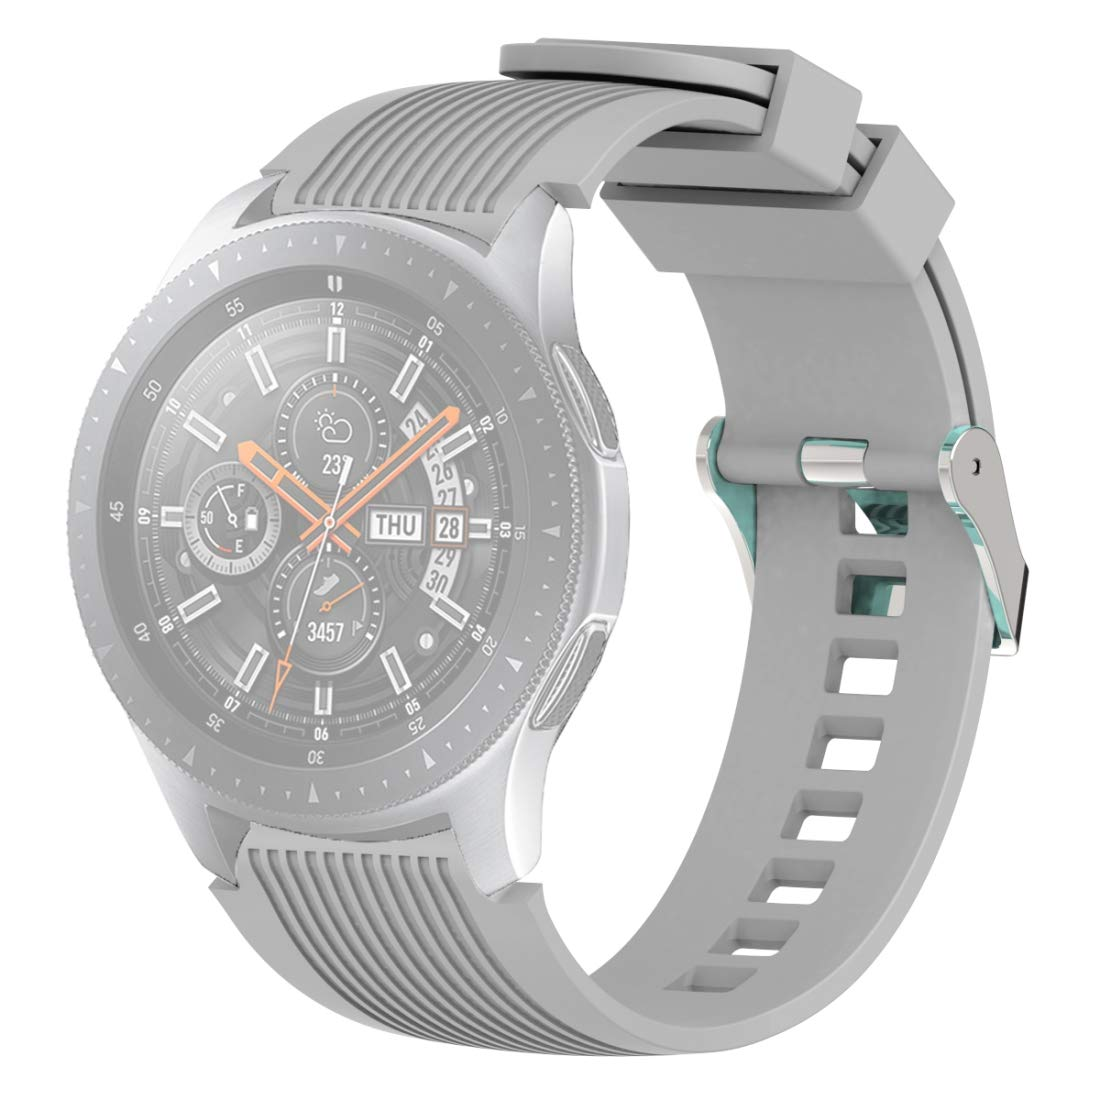 Vertical Grain Wrist Strap Watch Band for Galaxy Watch 46mm Premium Quality (Color : Grey) by GuiPing